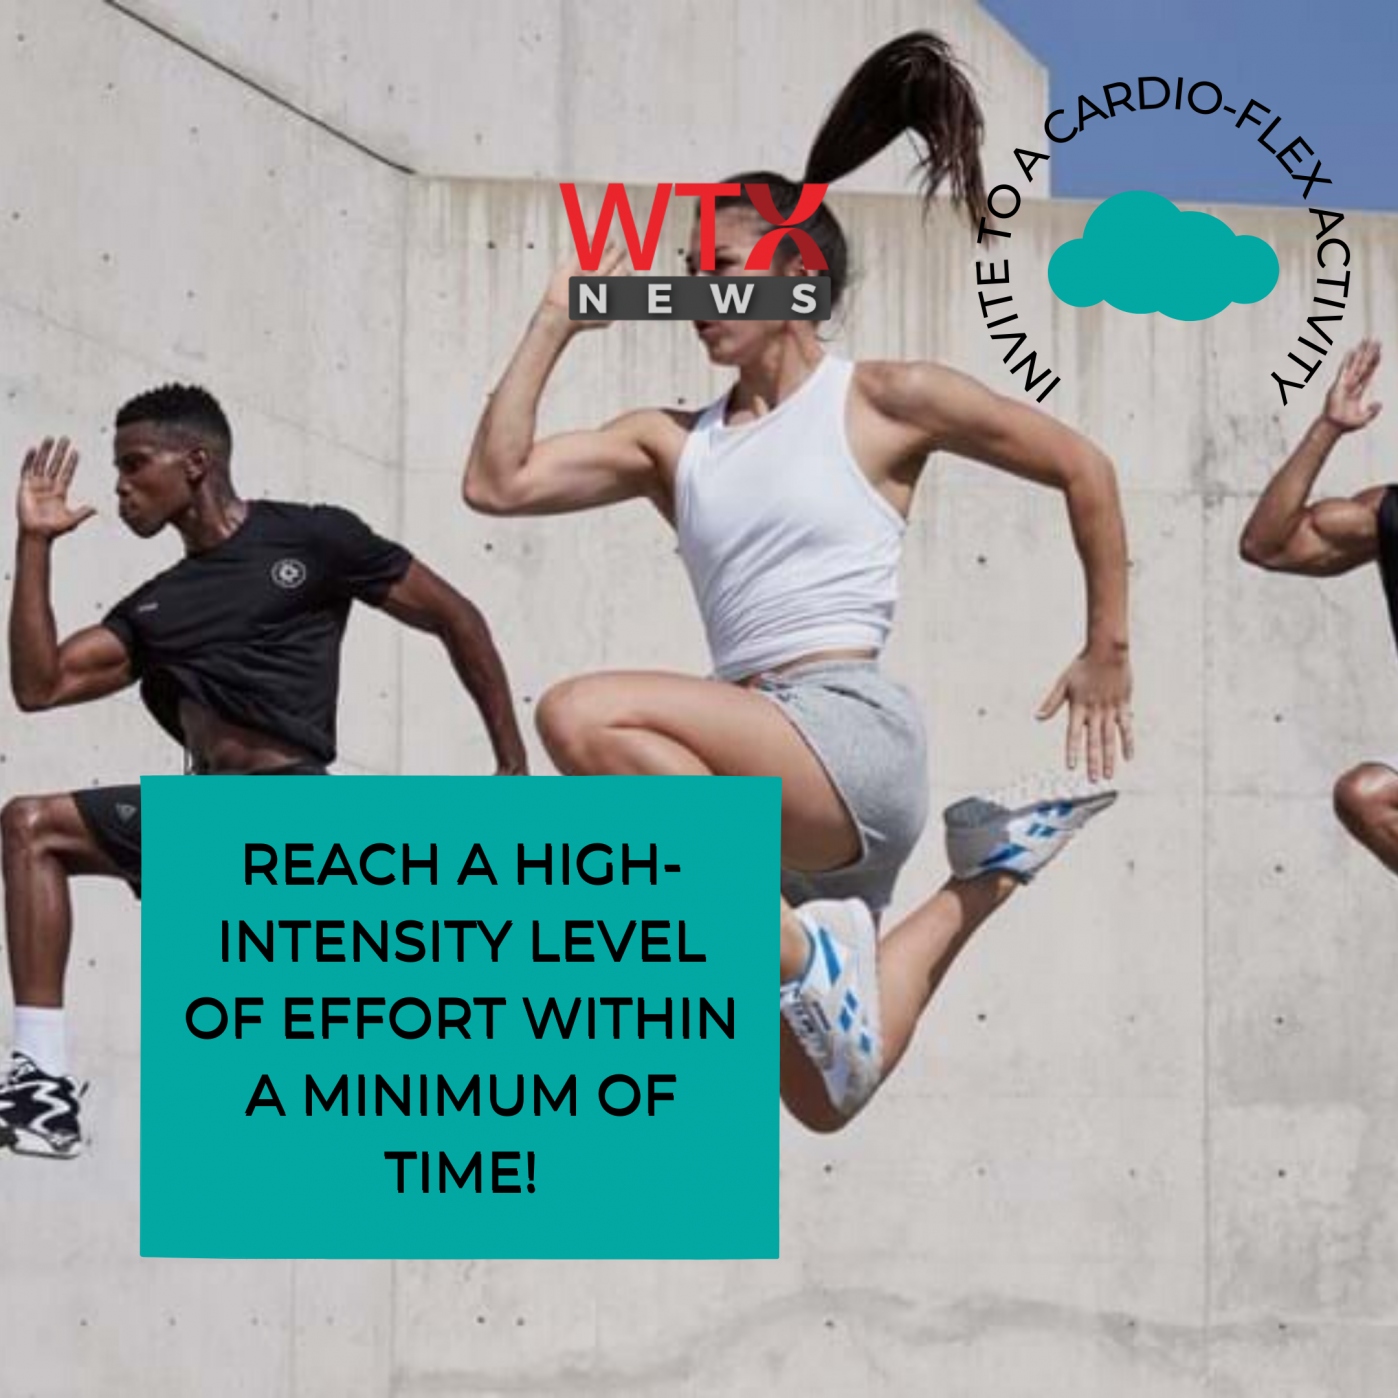 Reach High levels of intensity